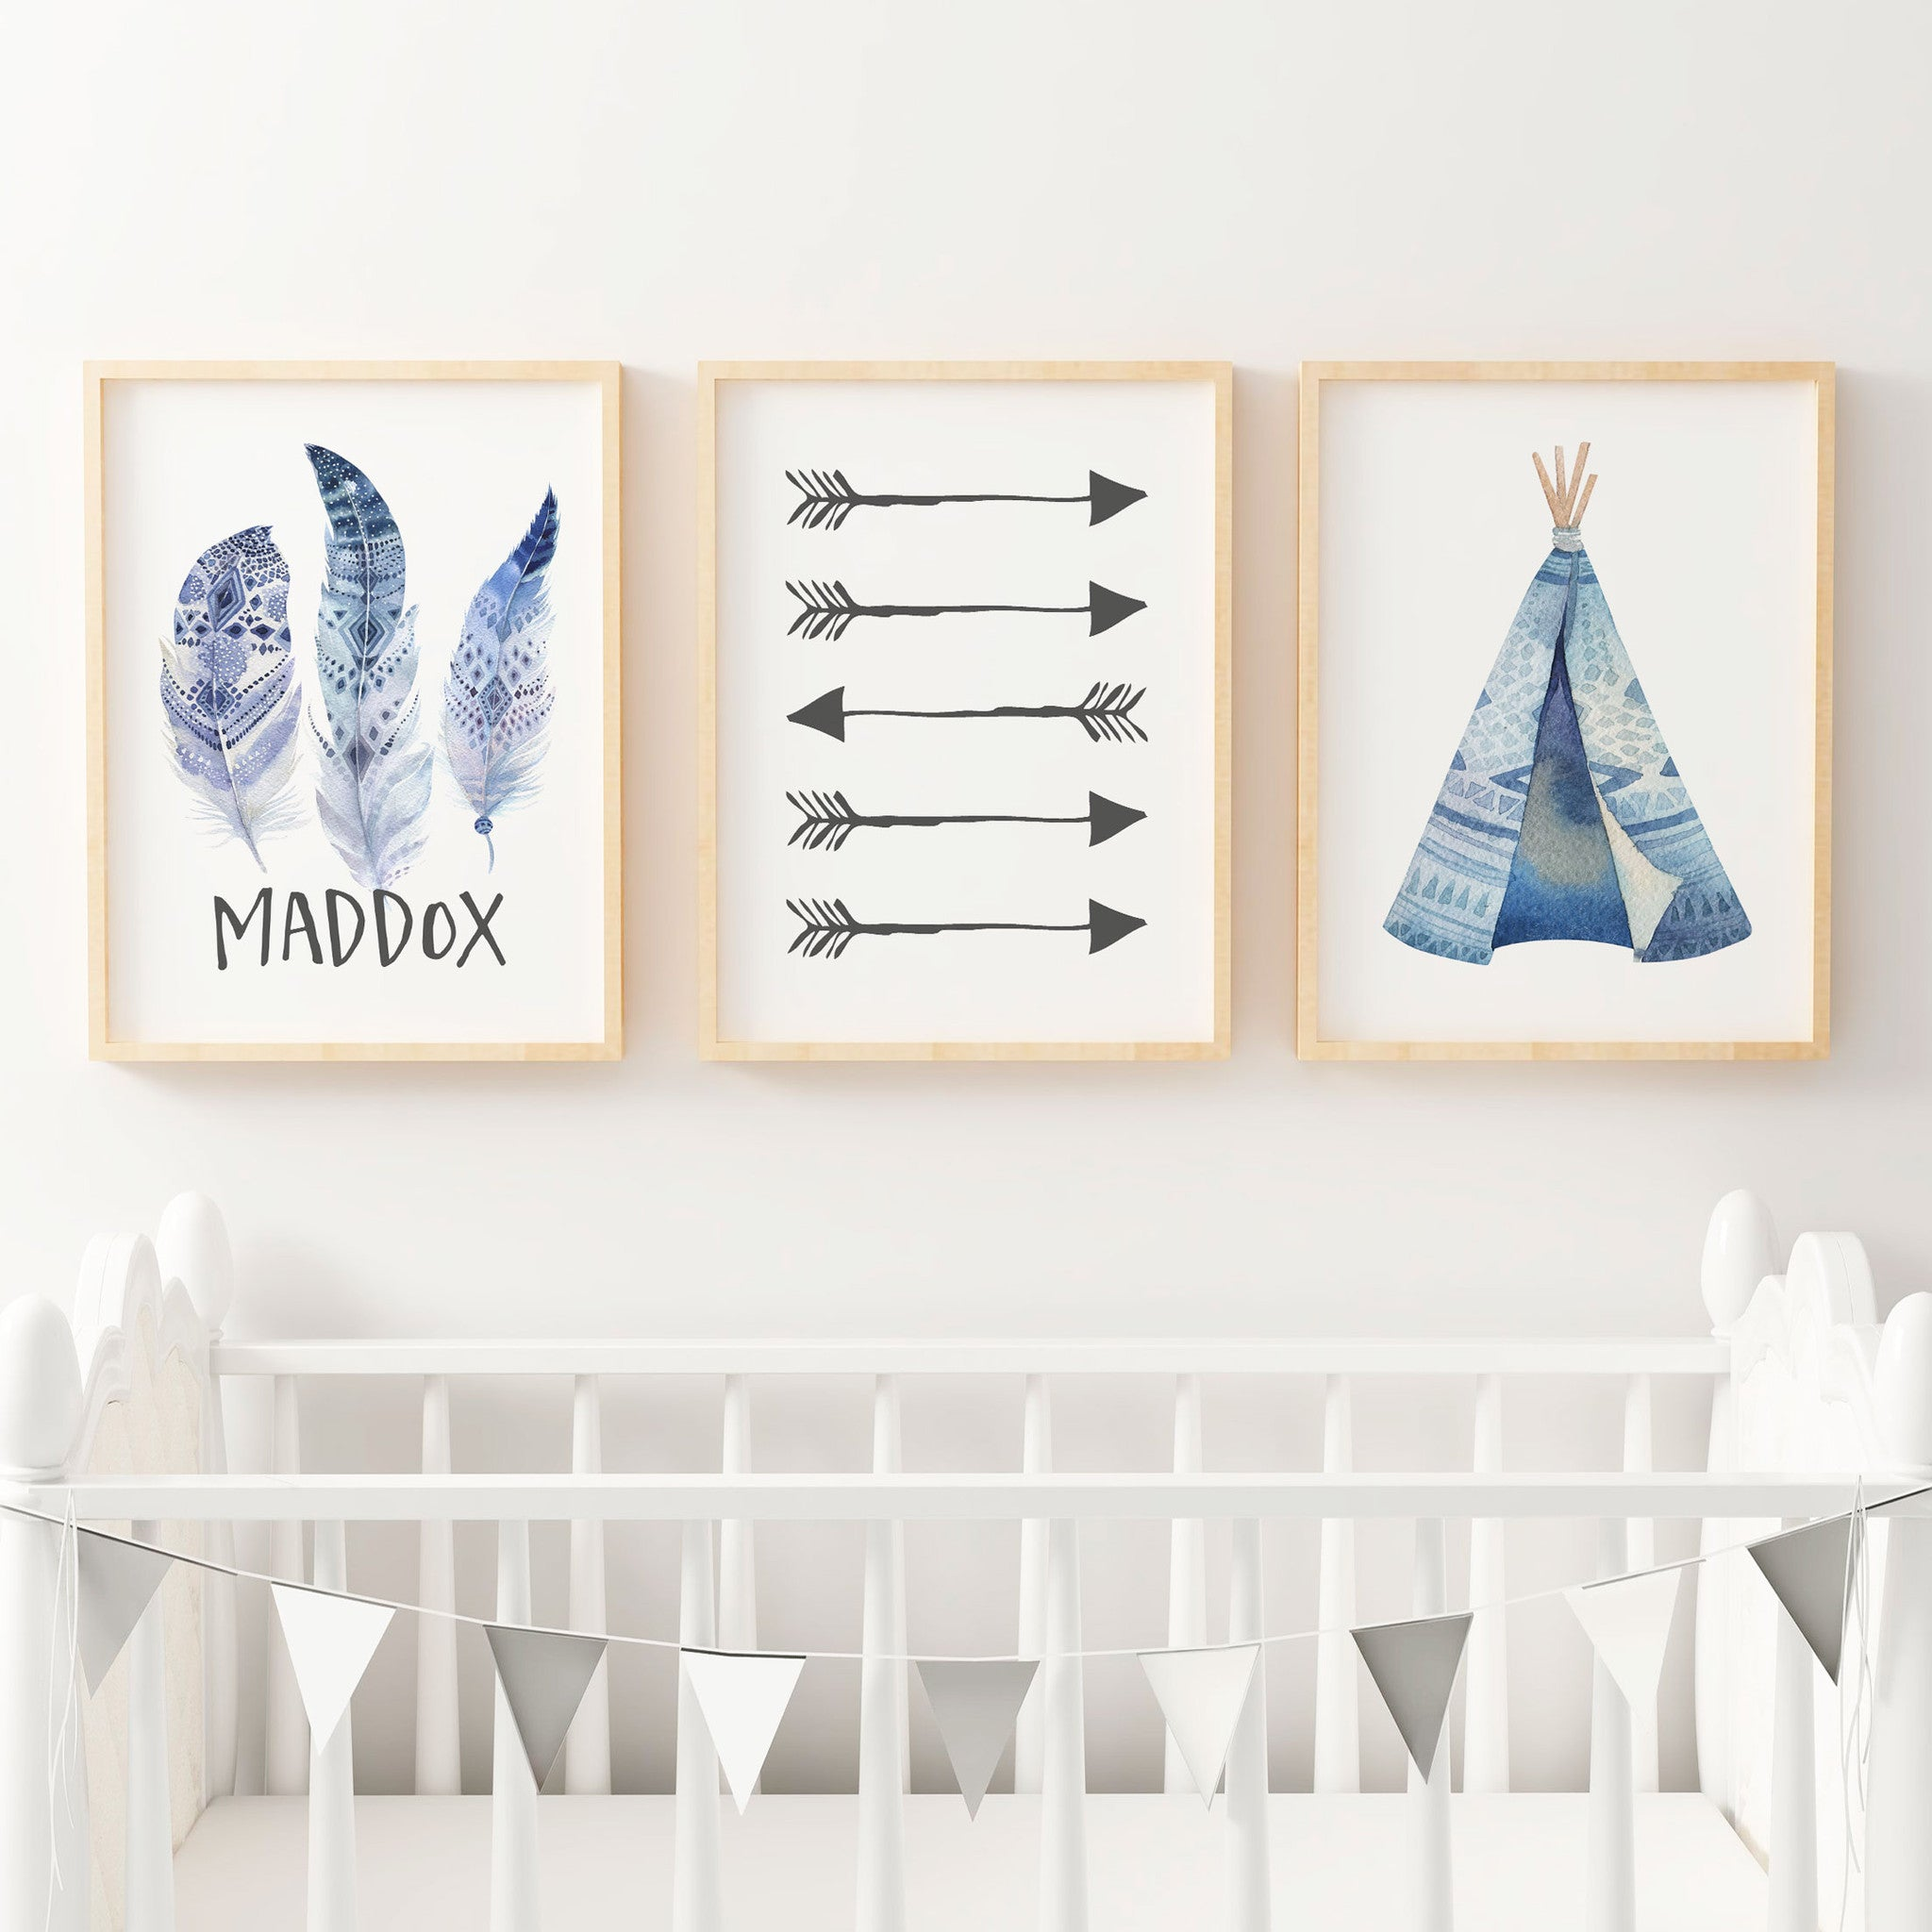 Bedroom Art Printables: Nursery & Bedroom Prints